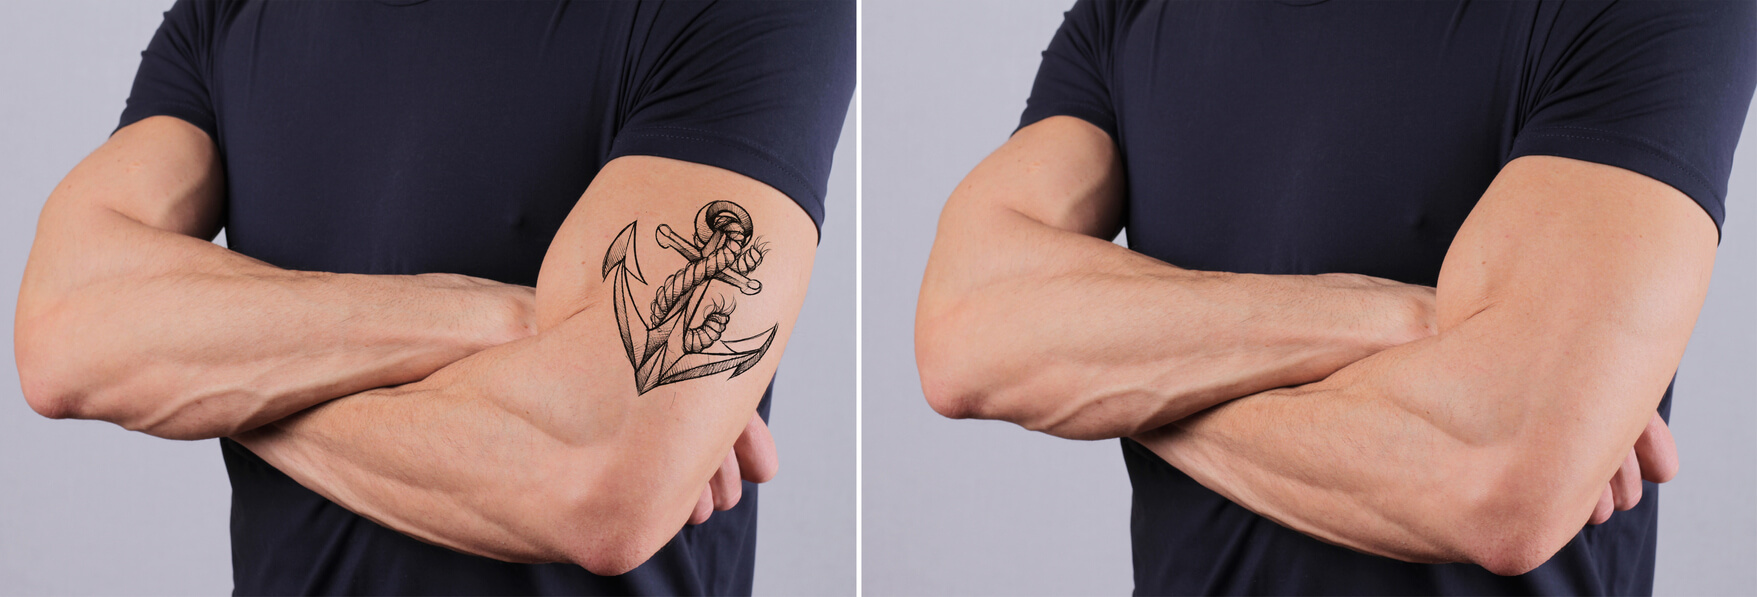 How Is Your Skin Affected by Laser Tattoo Removal?